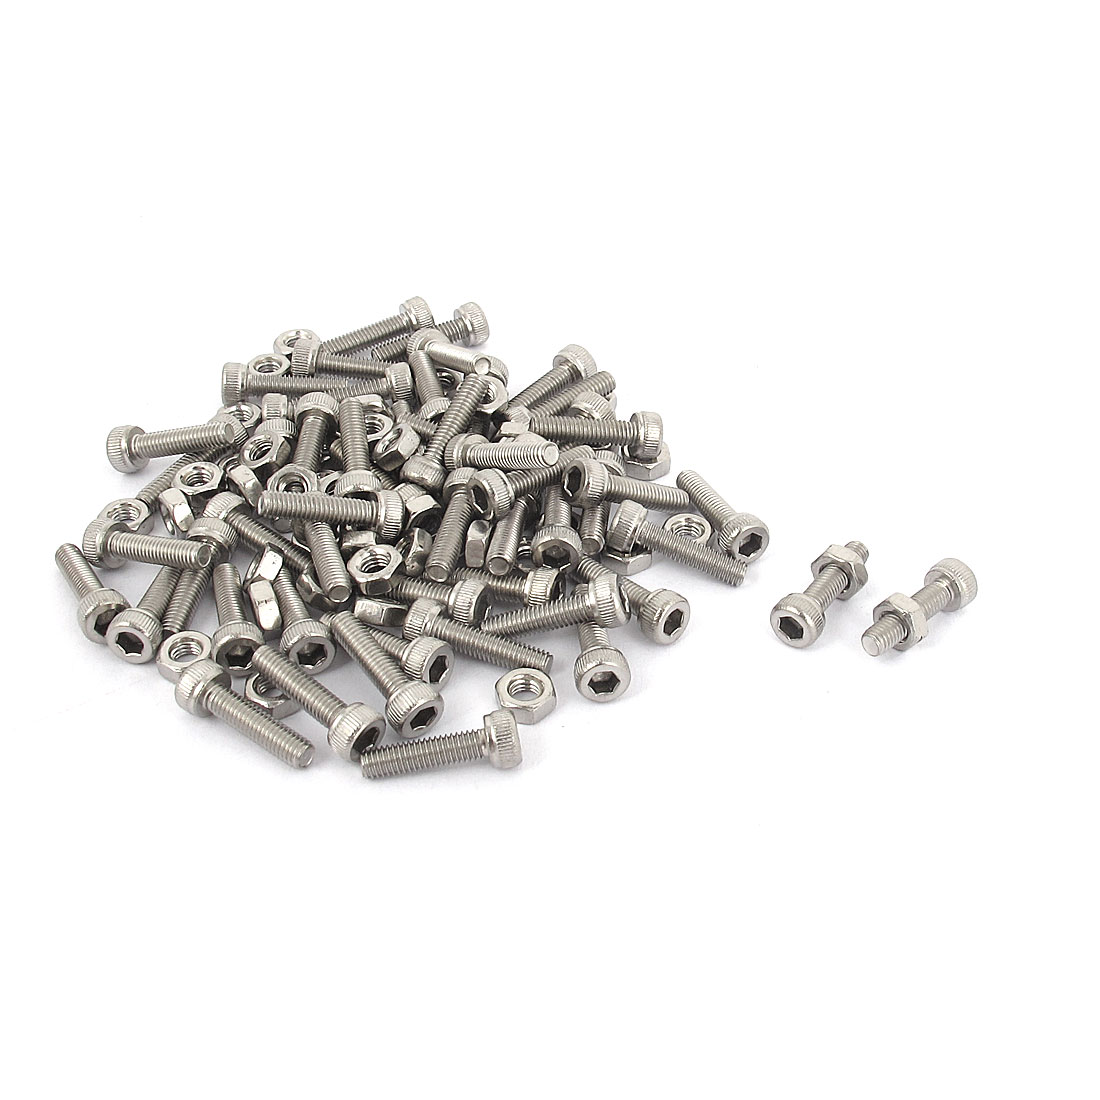 M3x12mm Stainless Steel Hex Socket Head Knurled Cap Screws Bolts Nut Set 50Pcs